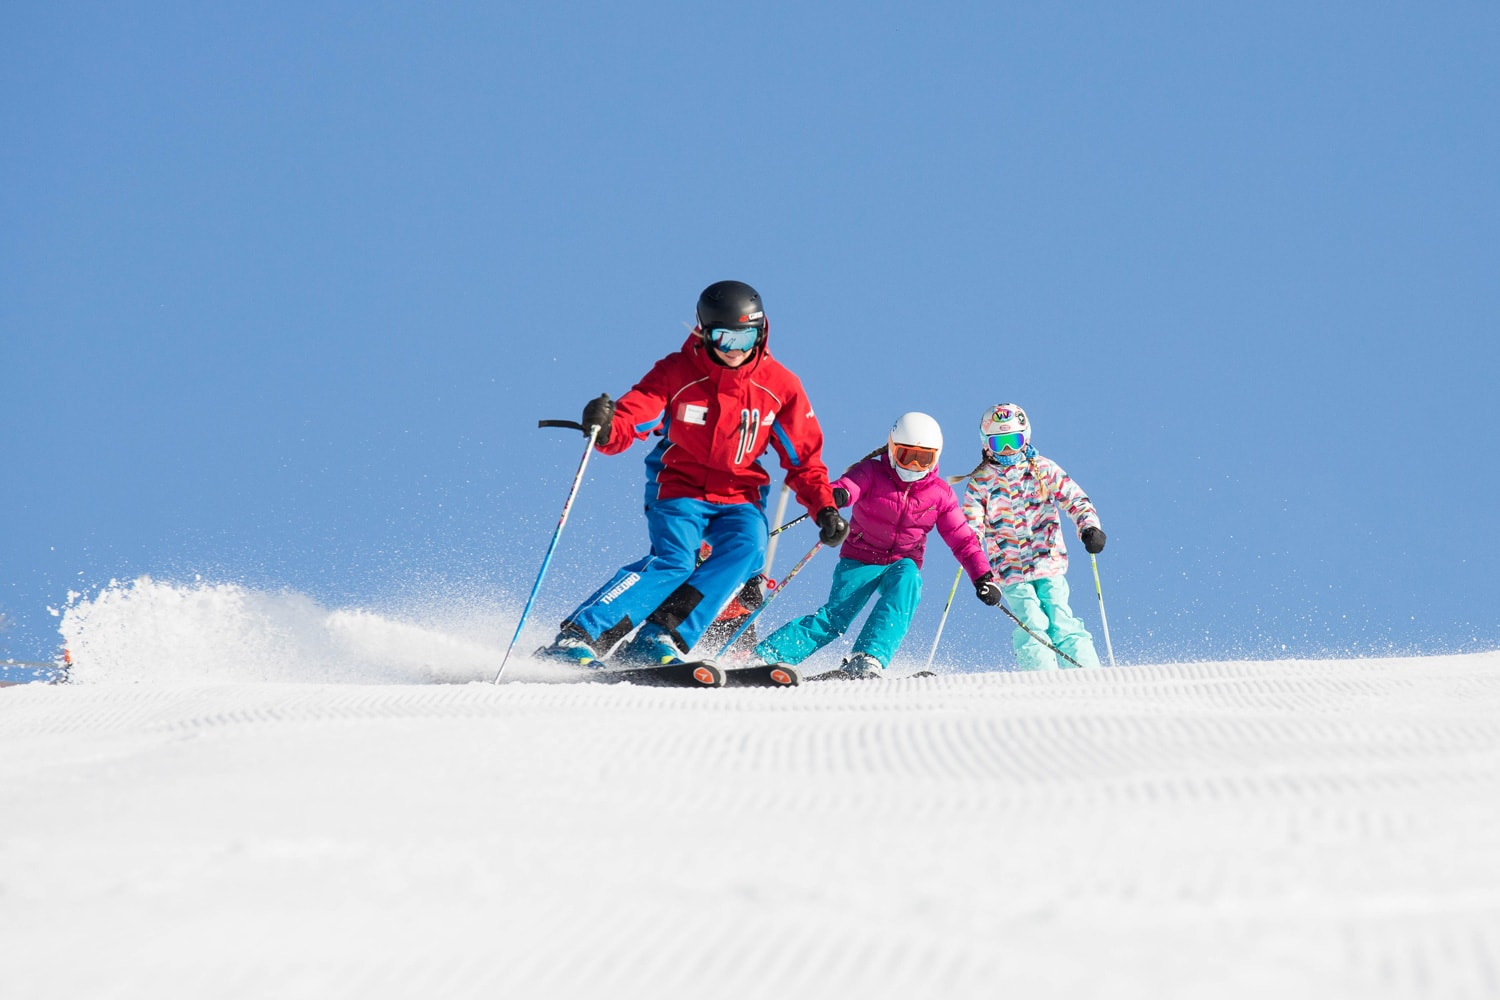 Spring skiing and snowboarding: 7 reasons why you need to be snow fit this spring